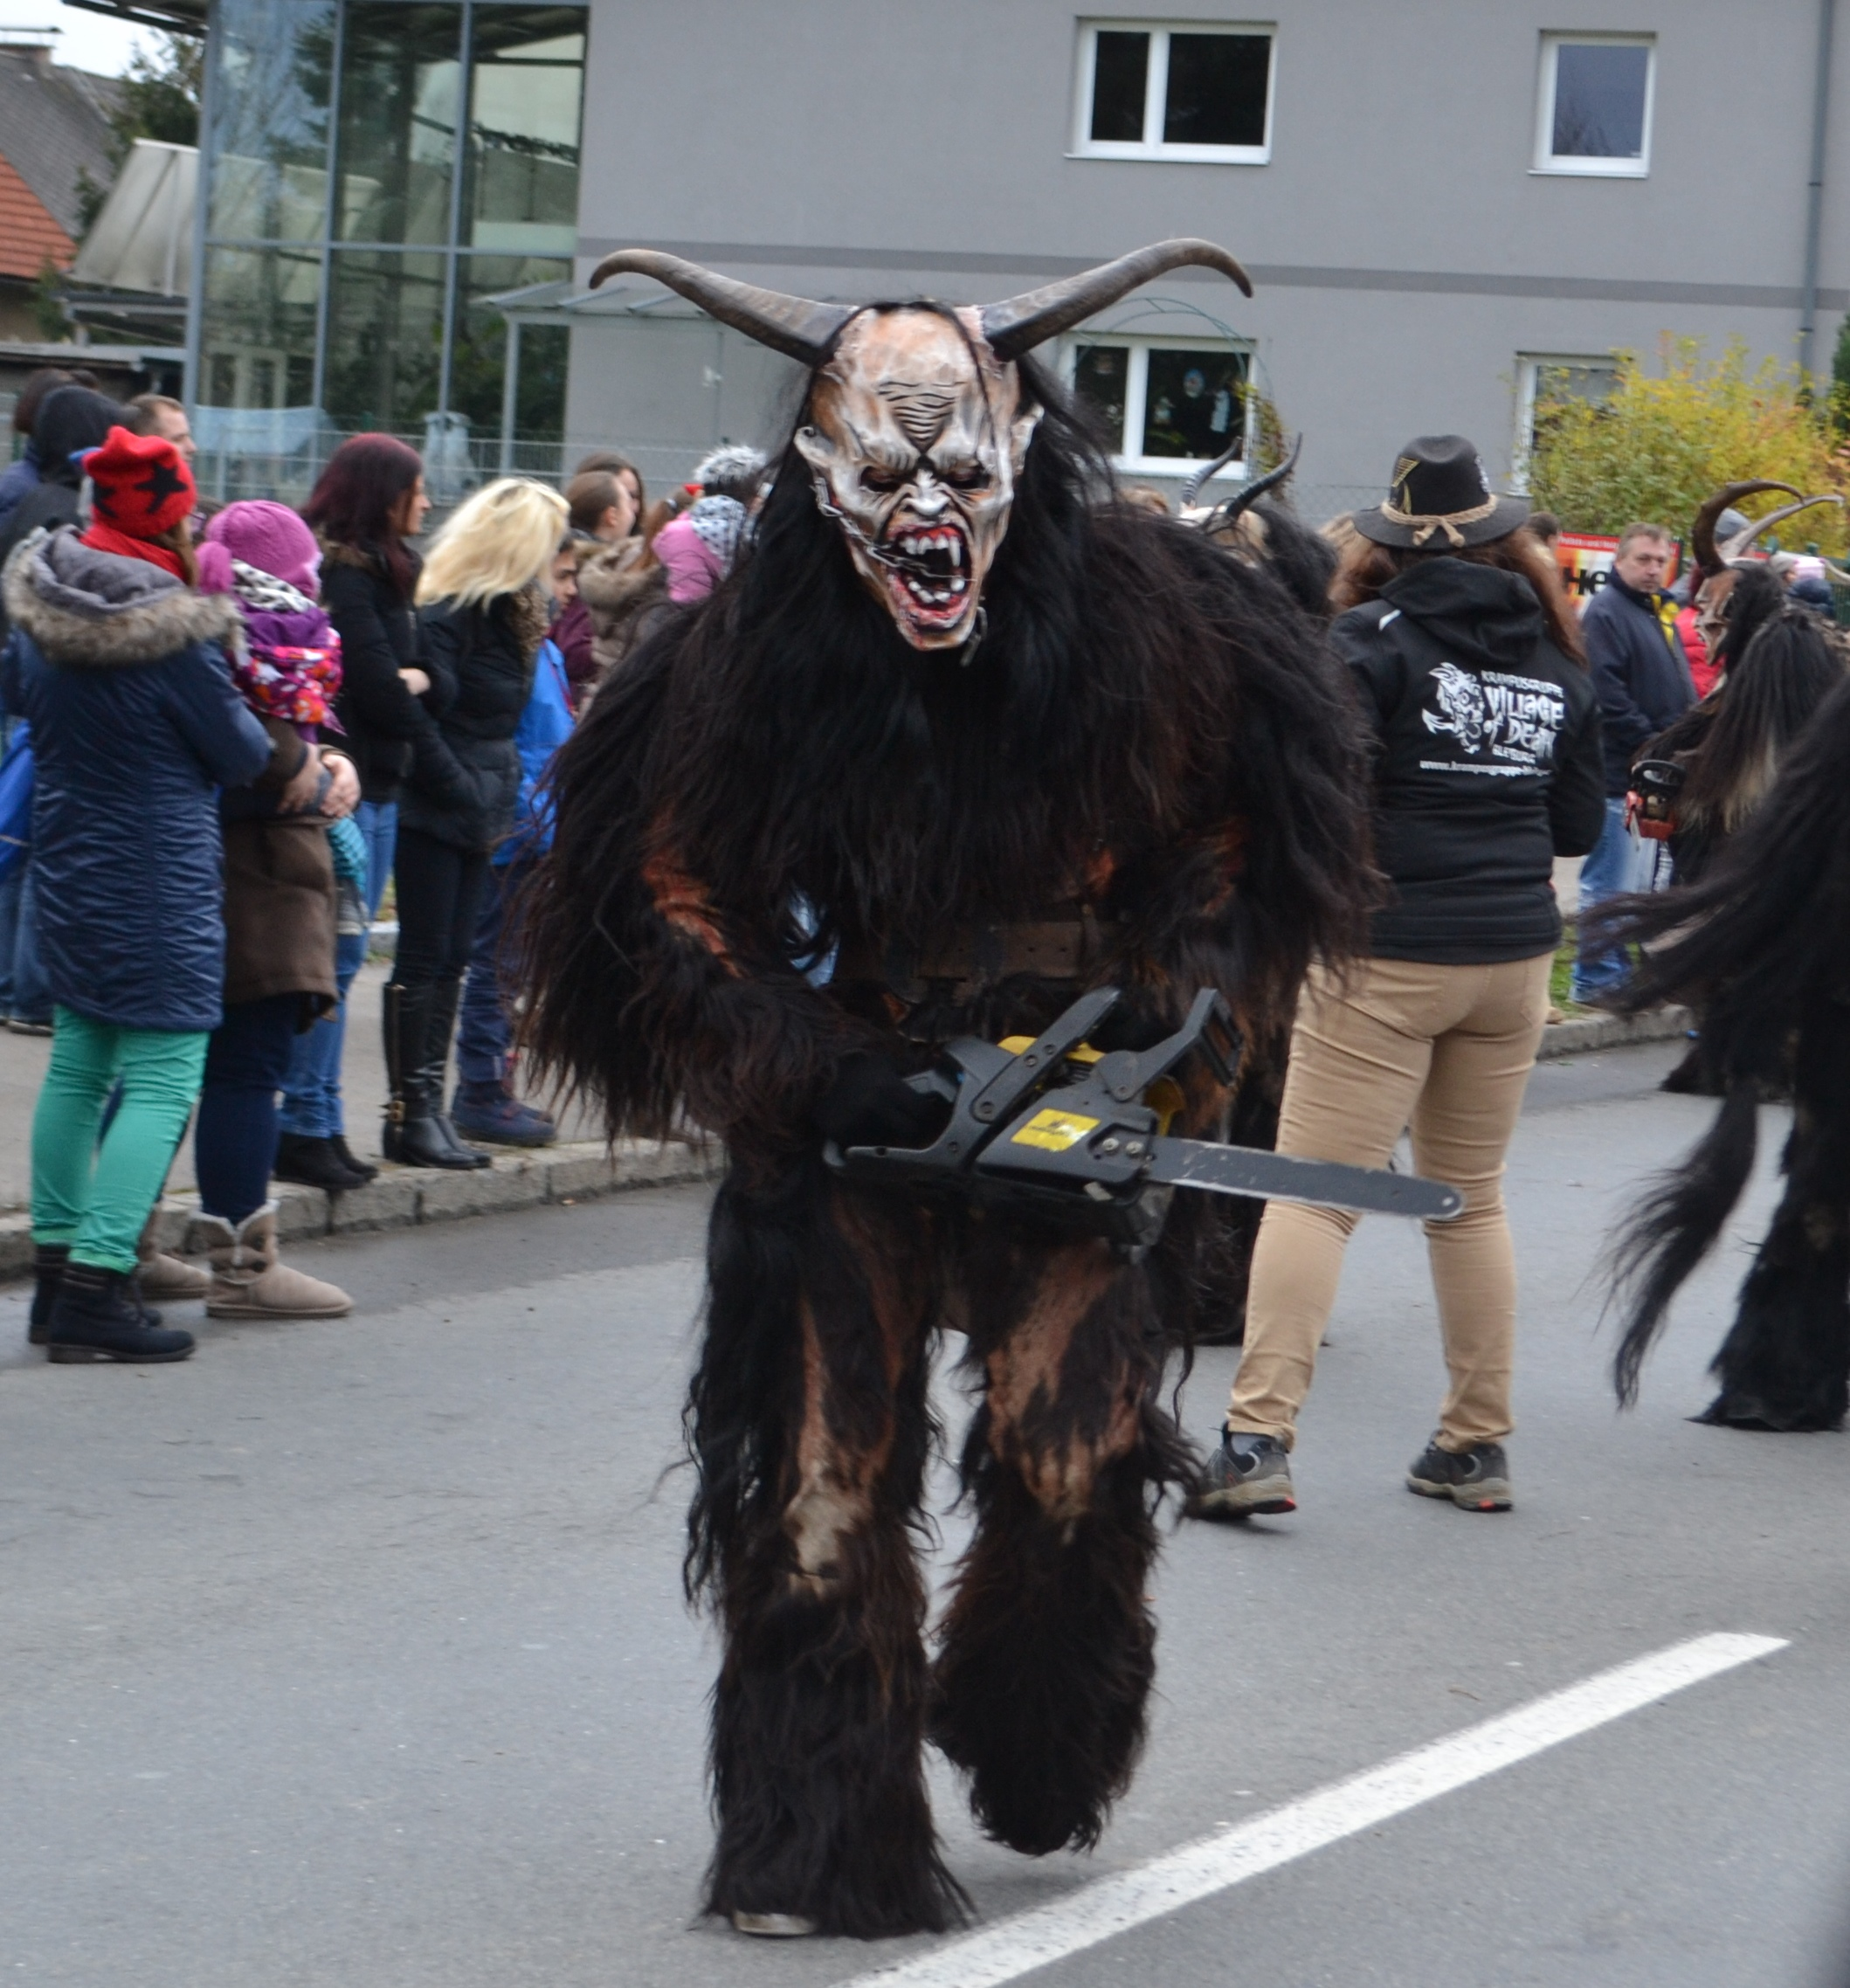 An image of a modern Krampus